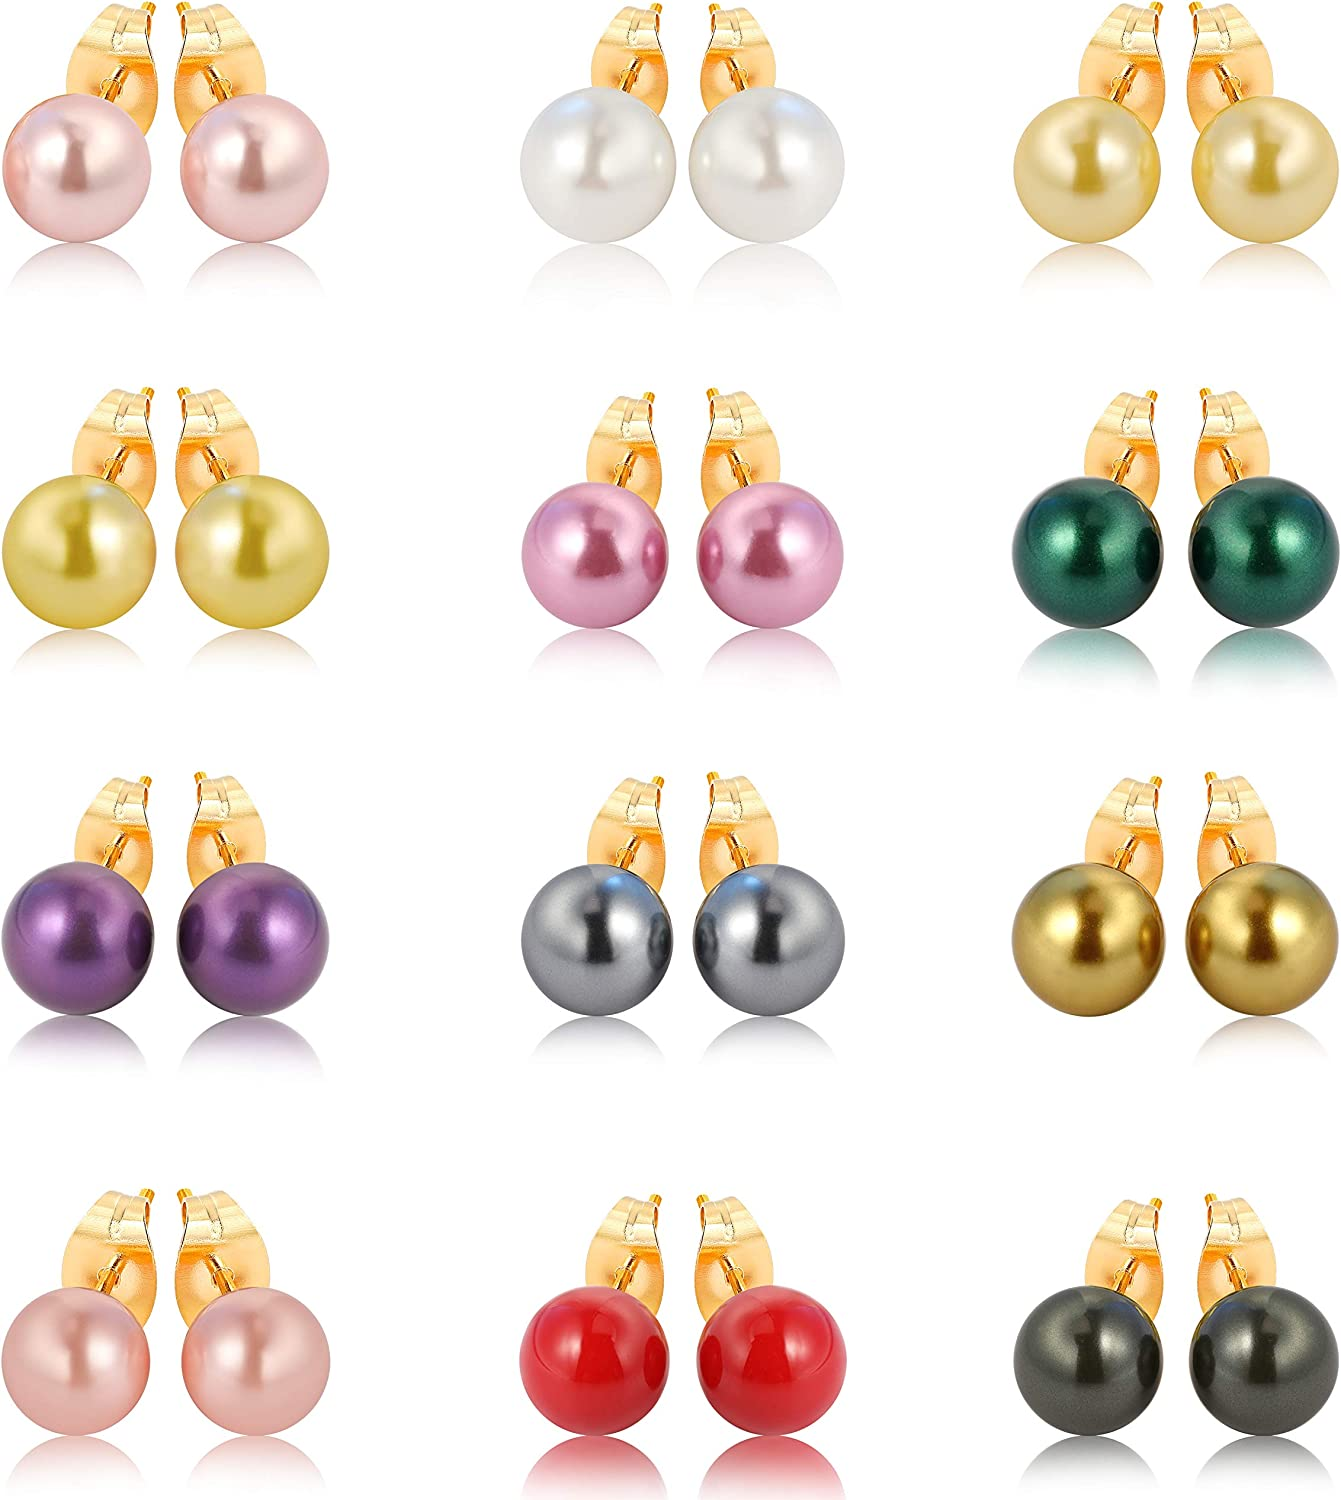 LIZOL 12 Pairs Colors Glass Pearl Earrings Assorted Mixed Stainless Steel Hypoallergenic Starter Set Gift Set for Women kids Girls